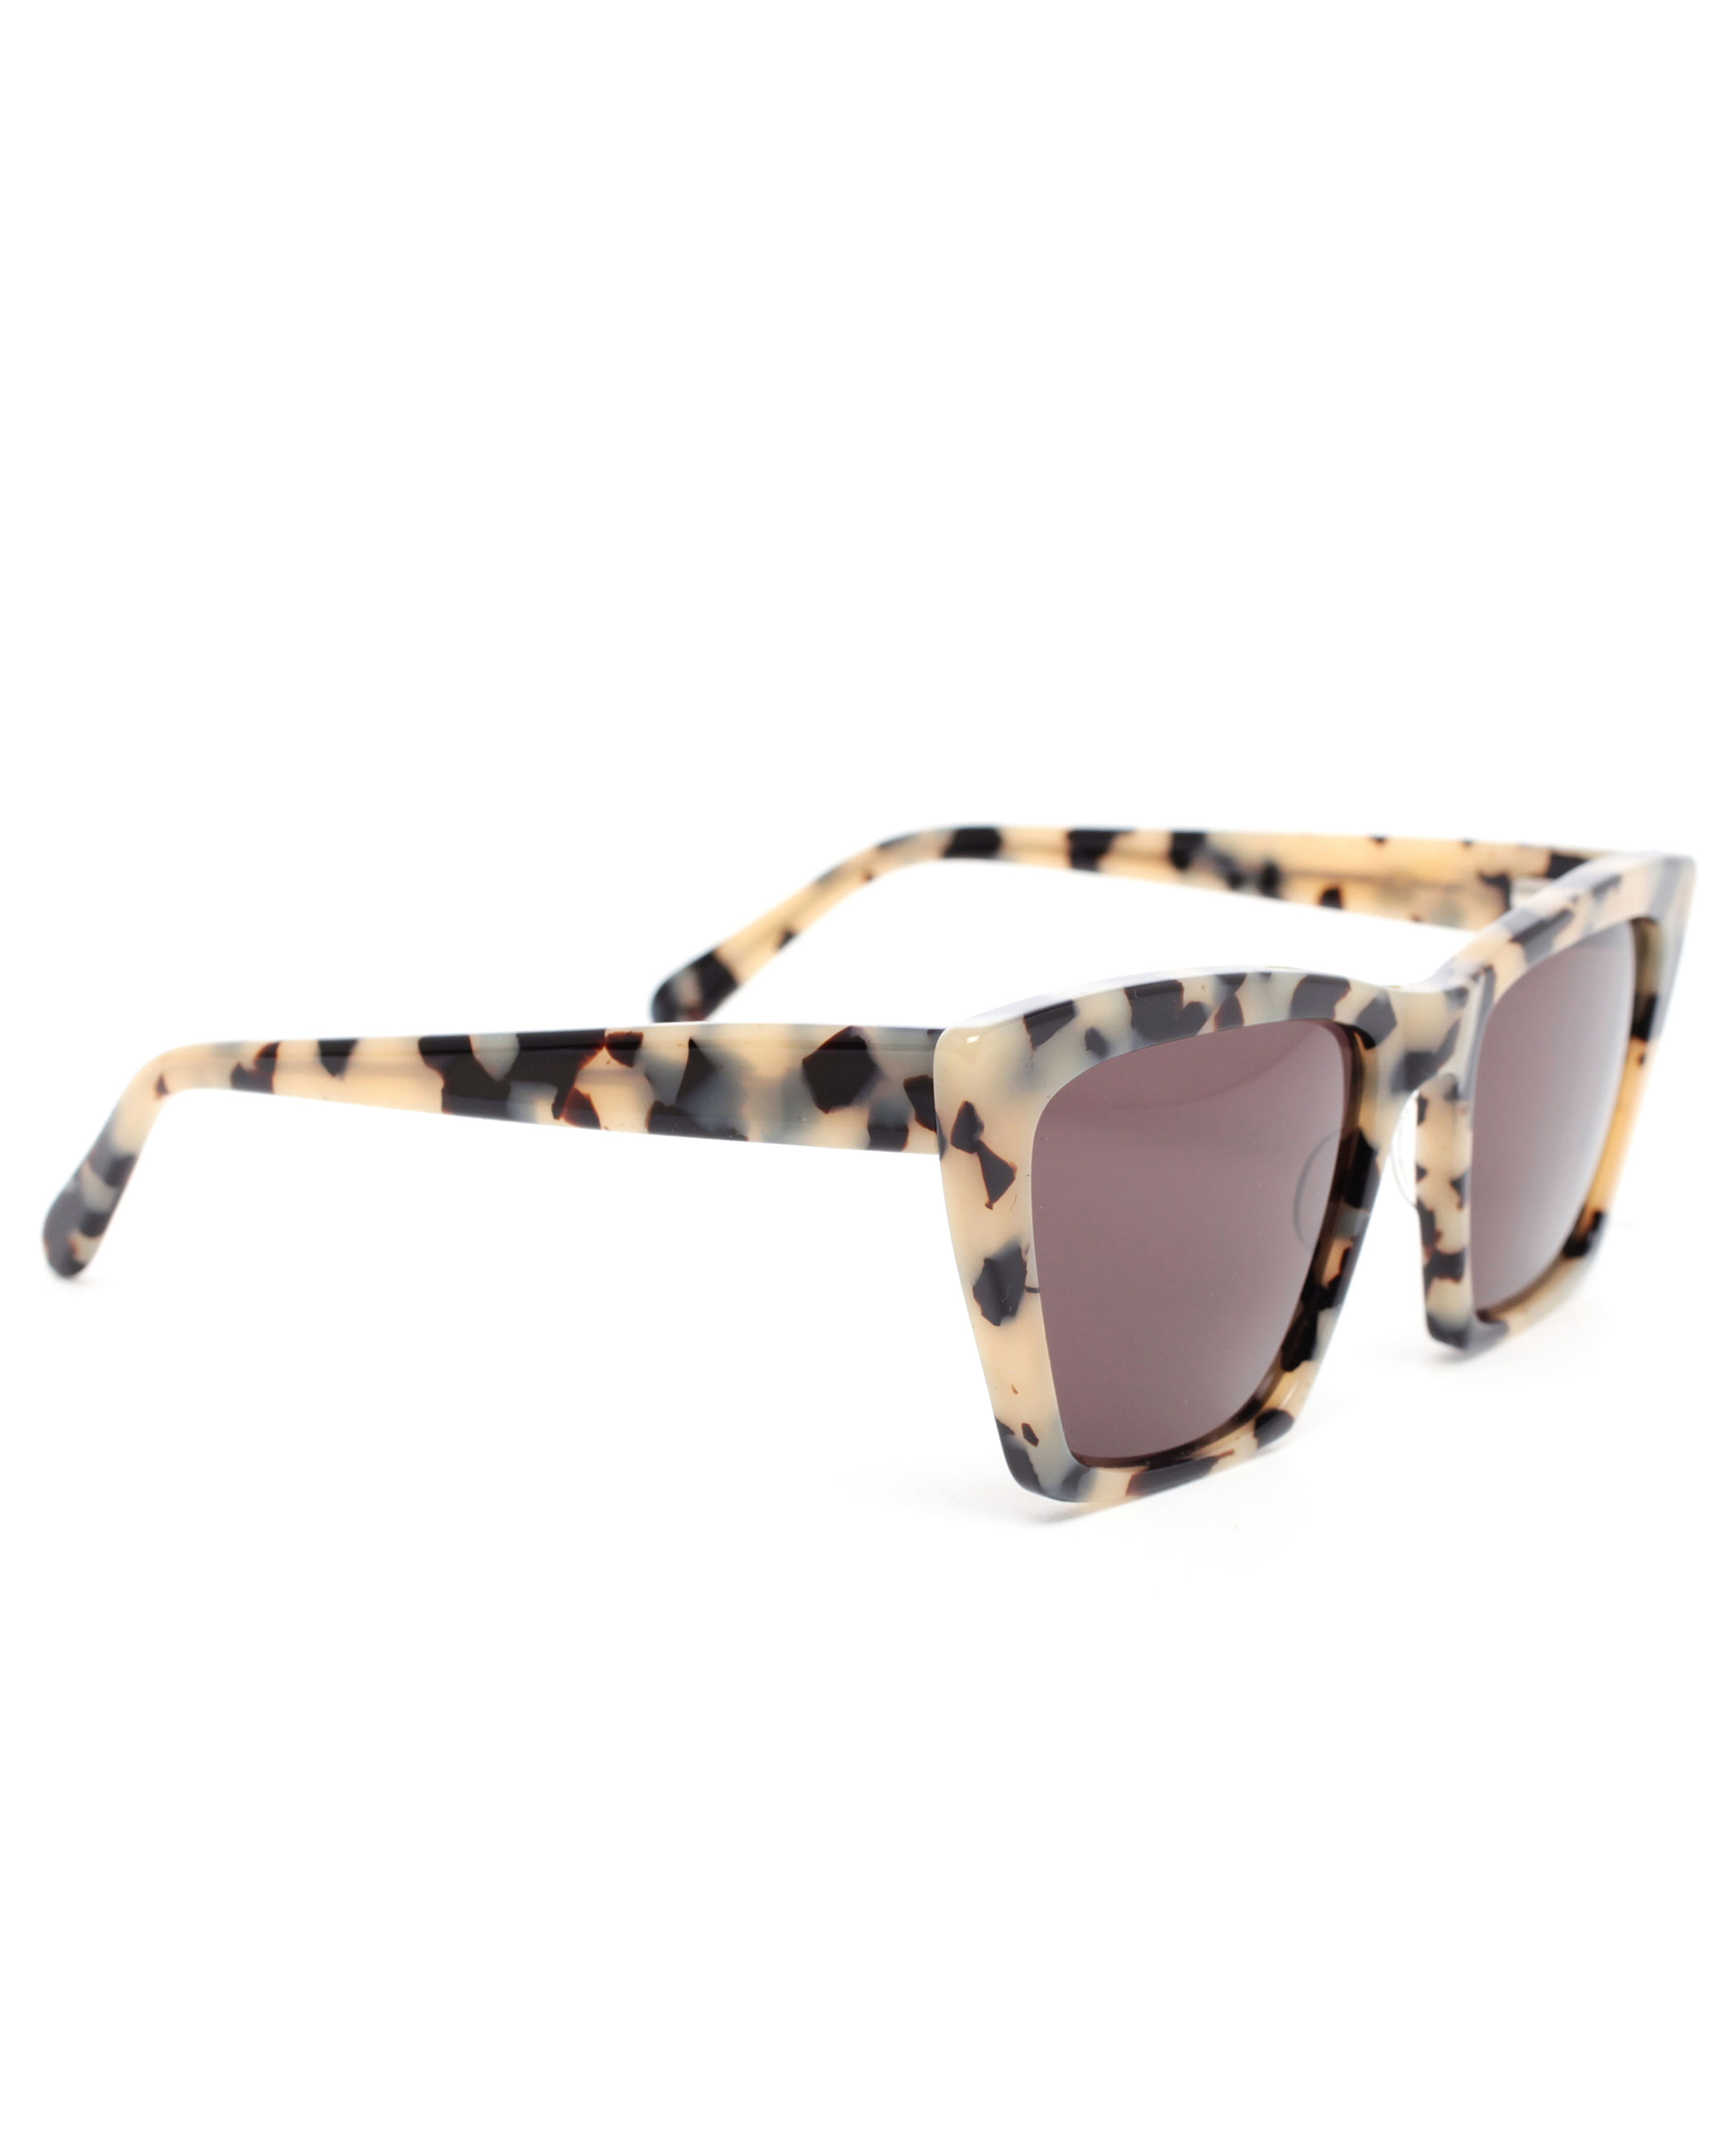 Prism Sydney Sunglasses  prism sydney tortoises sunglasses in natural lyst